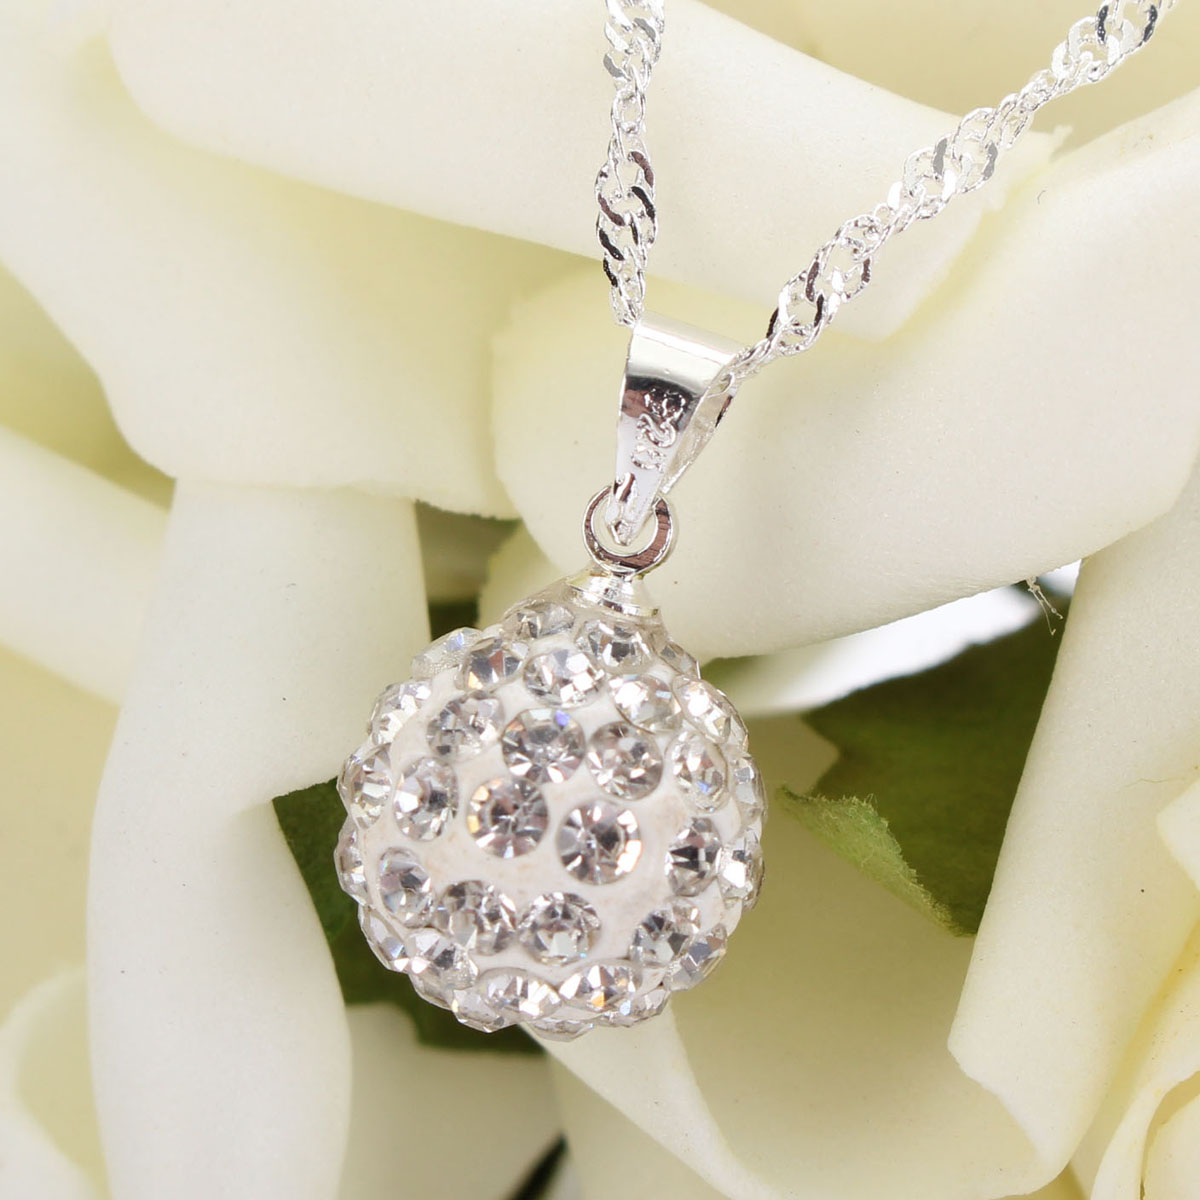 Silver Chain Crystal Rhinestone Ball Pendant Necklace